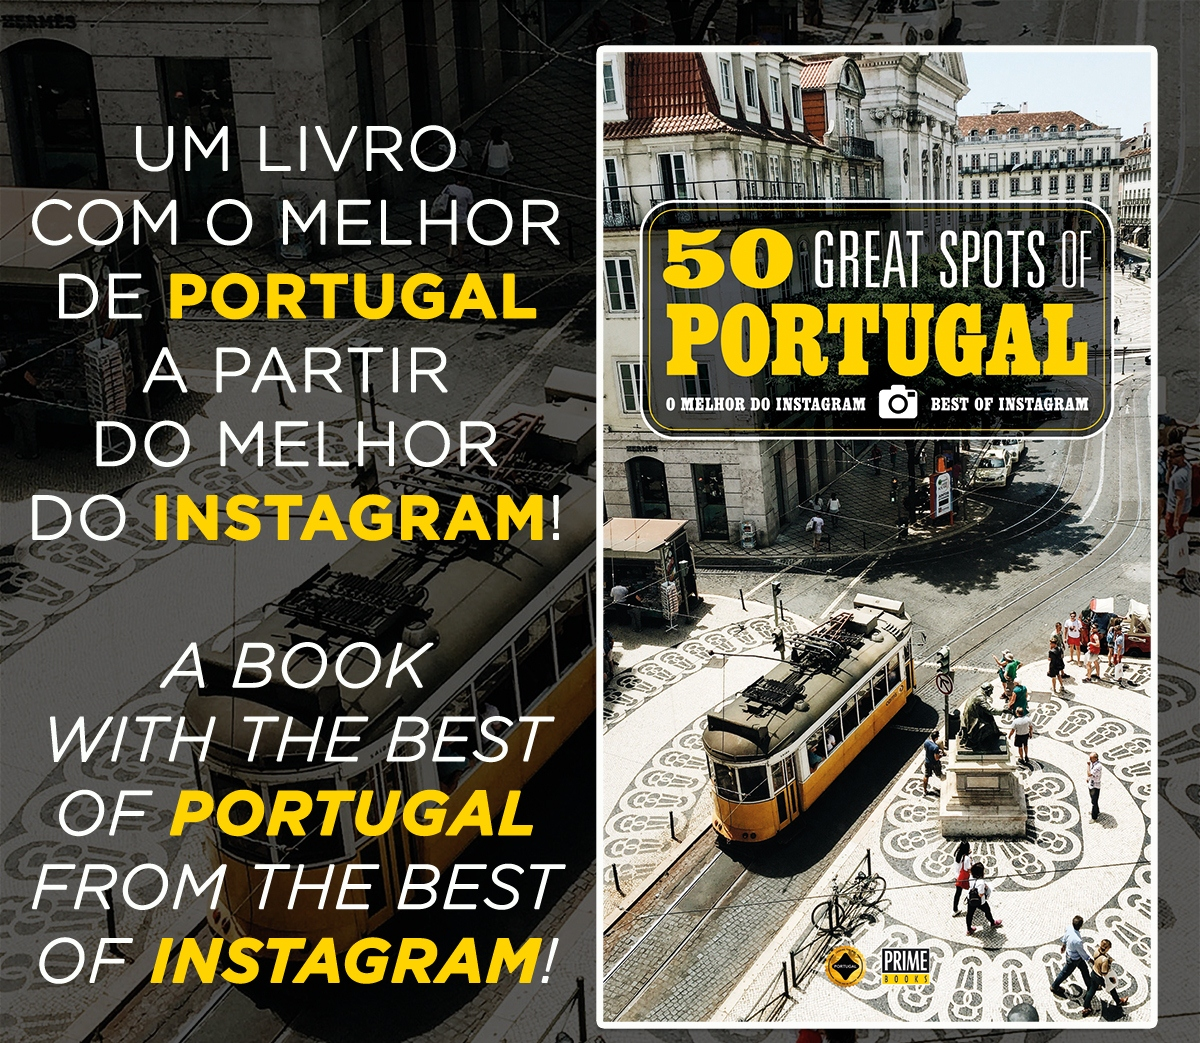 50 Great Spots of Portugal - ph. DR